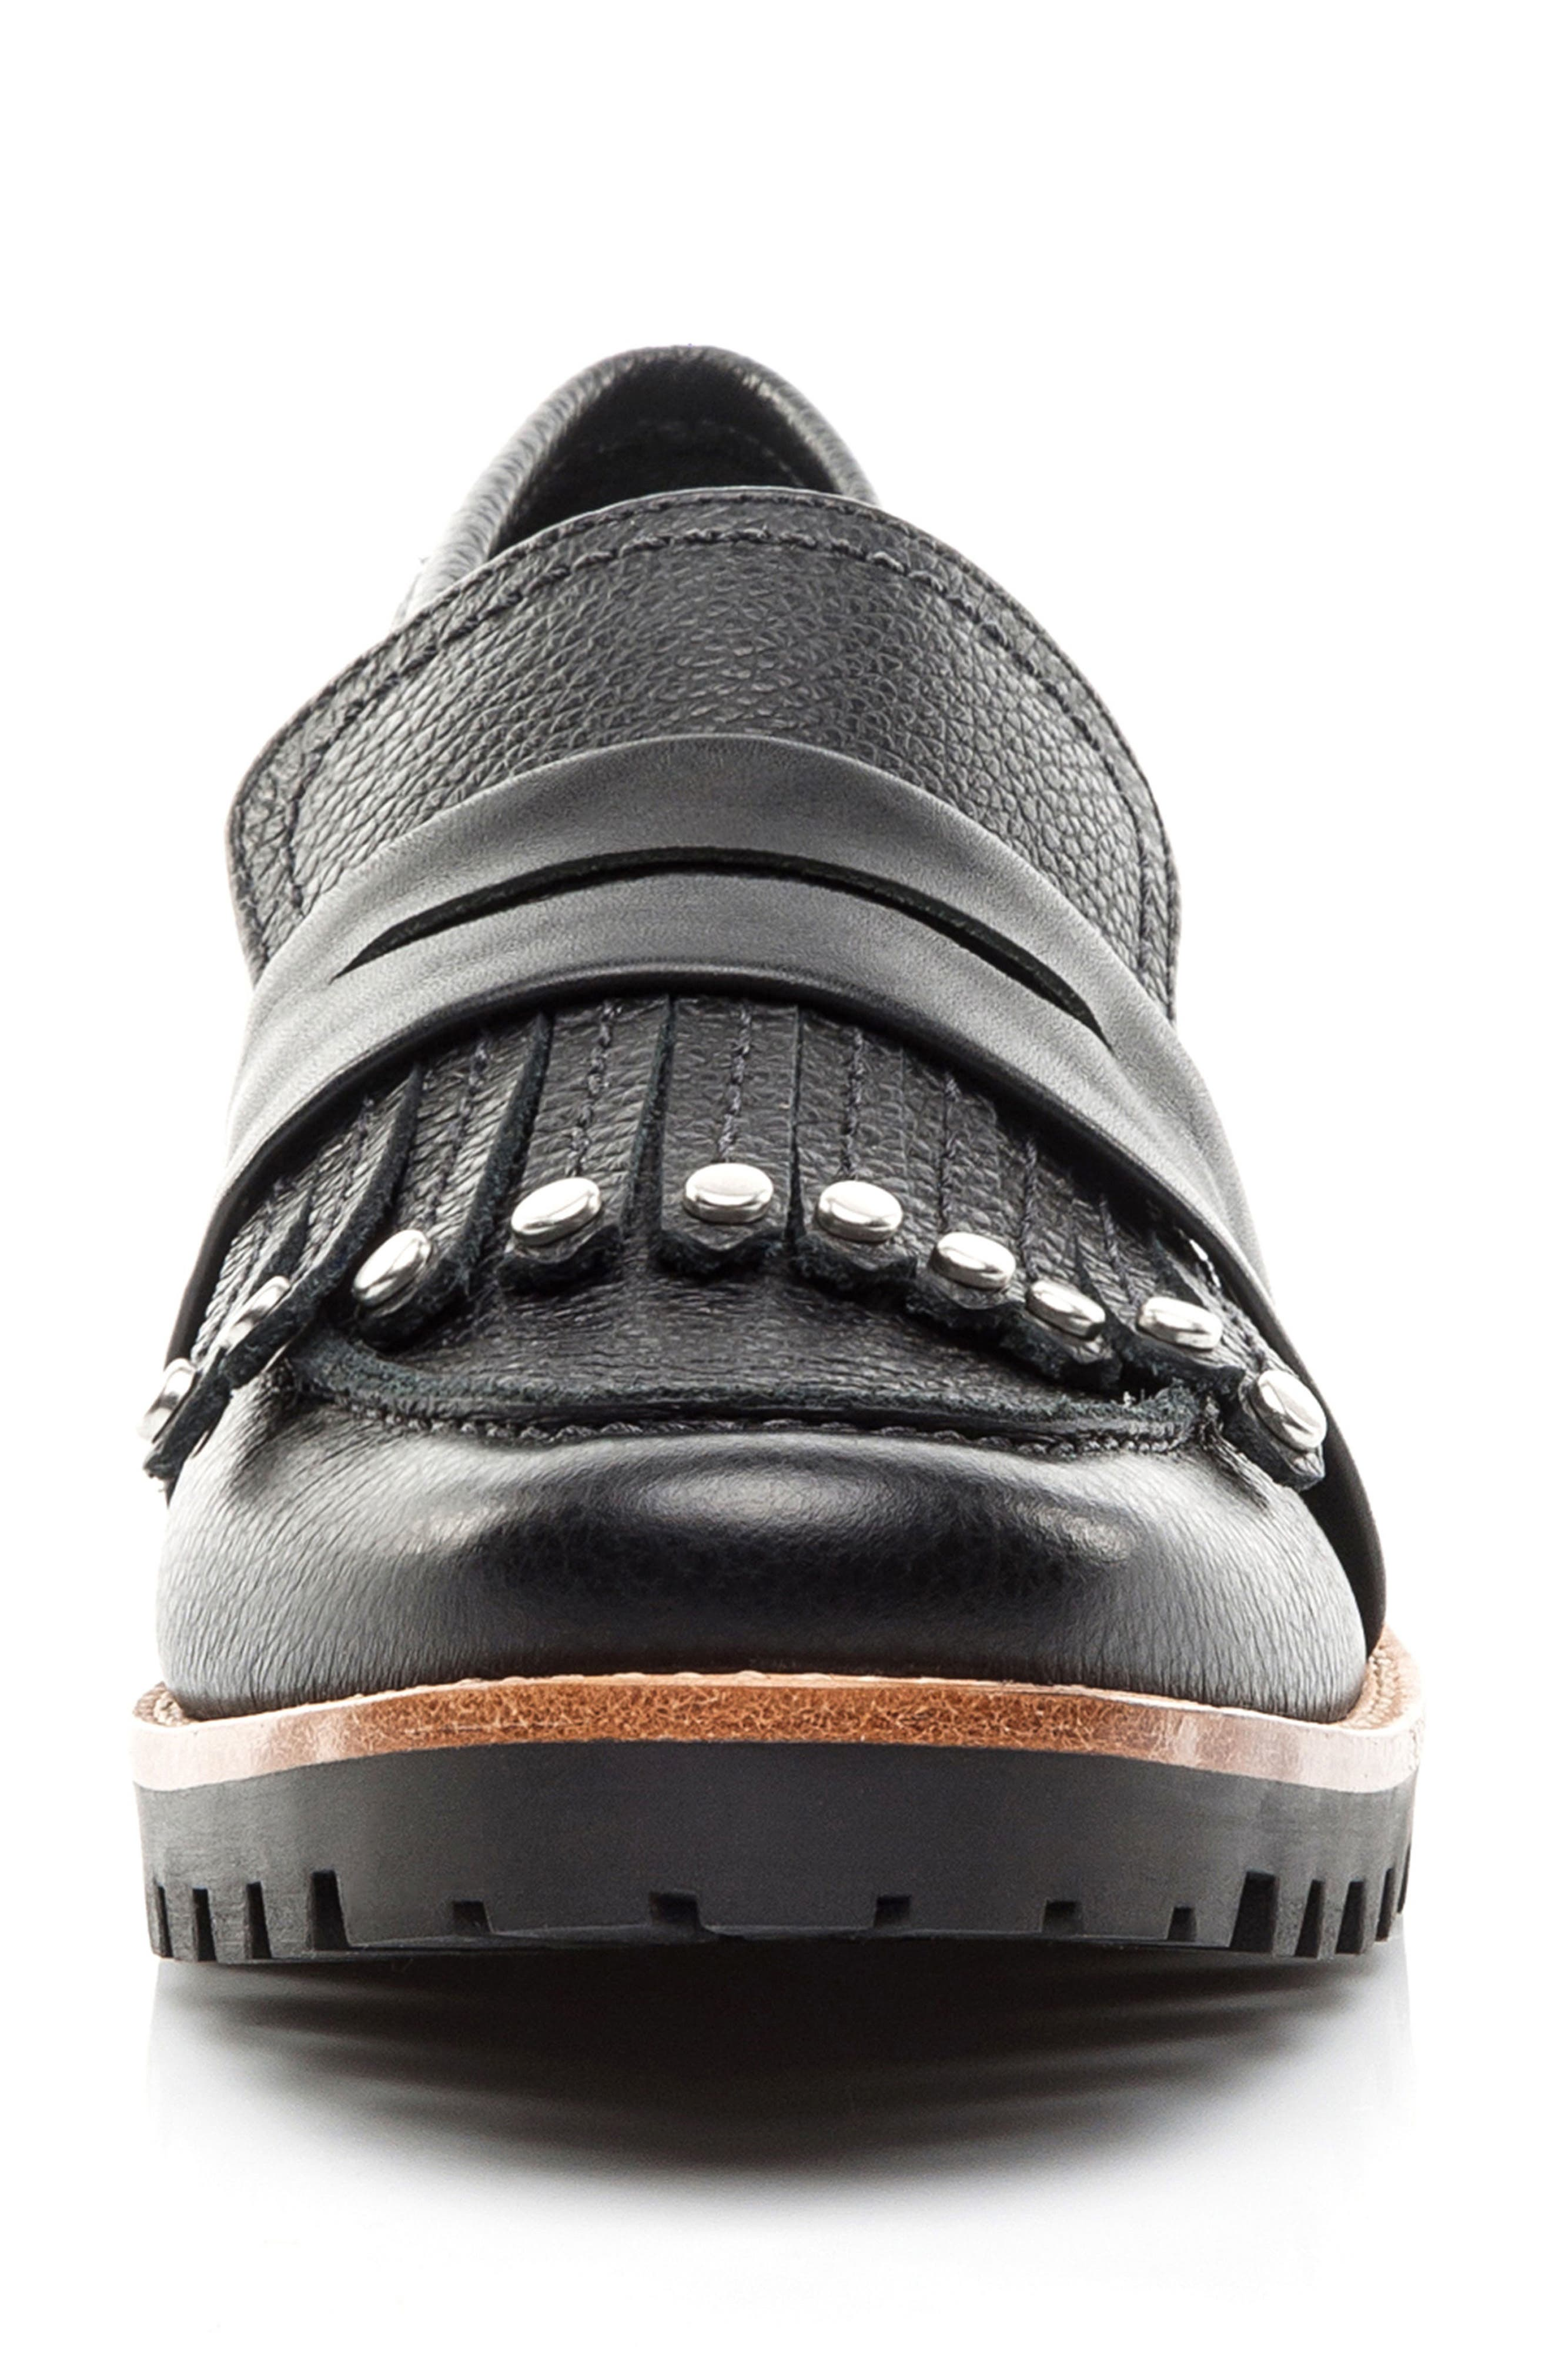 Olley Loafer,                             Alternate thumbnail 4, color,                             Black Leather